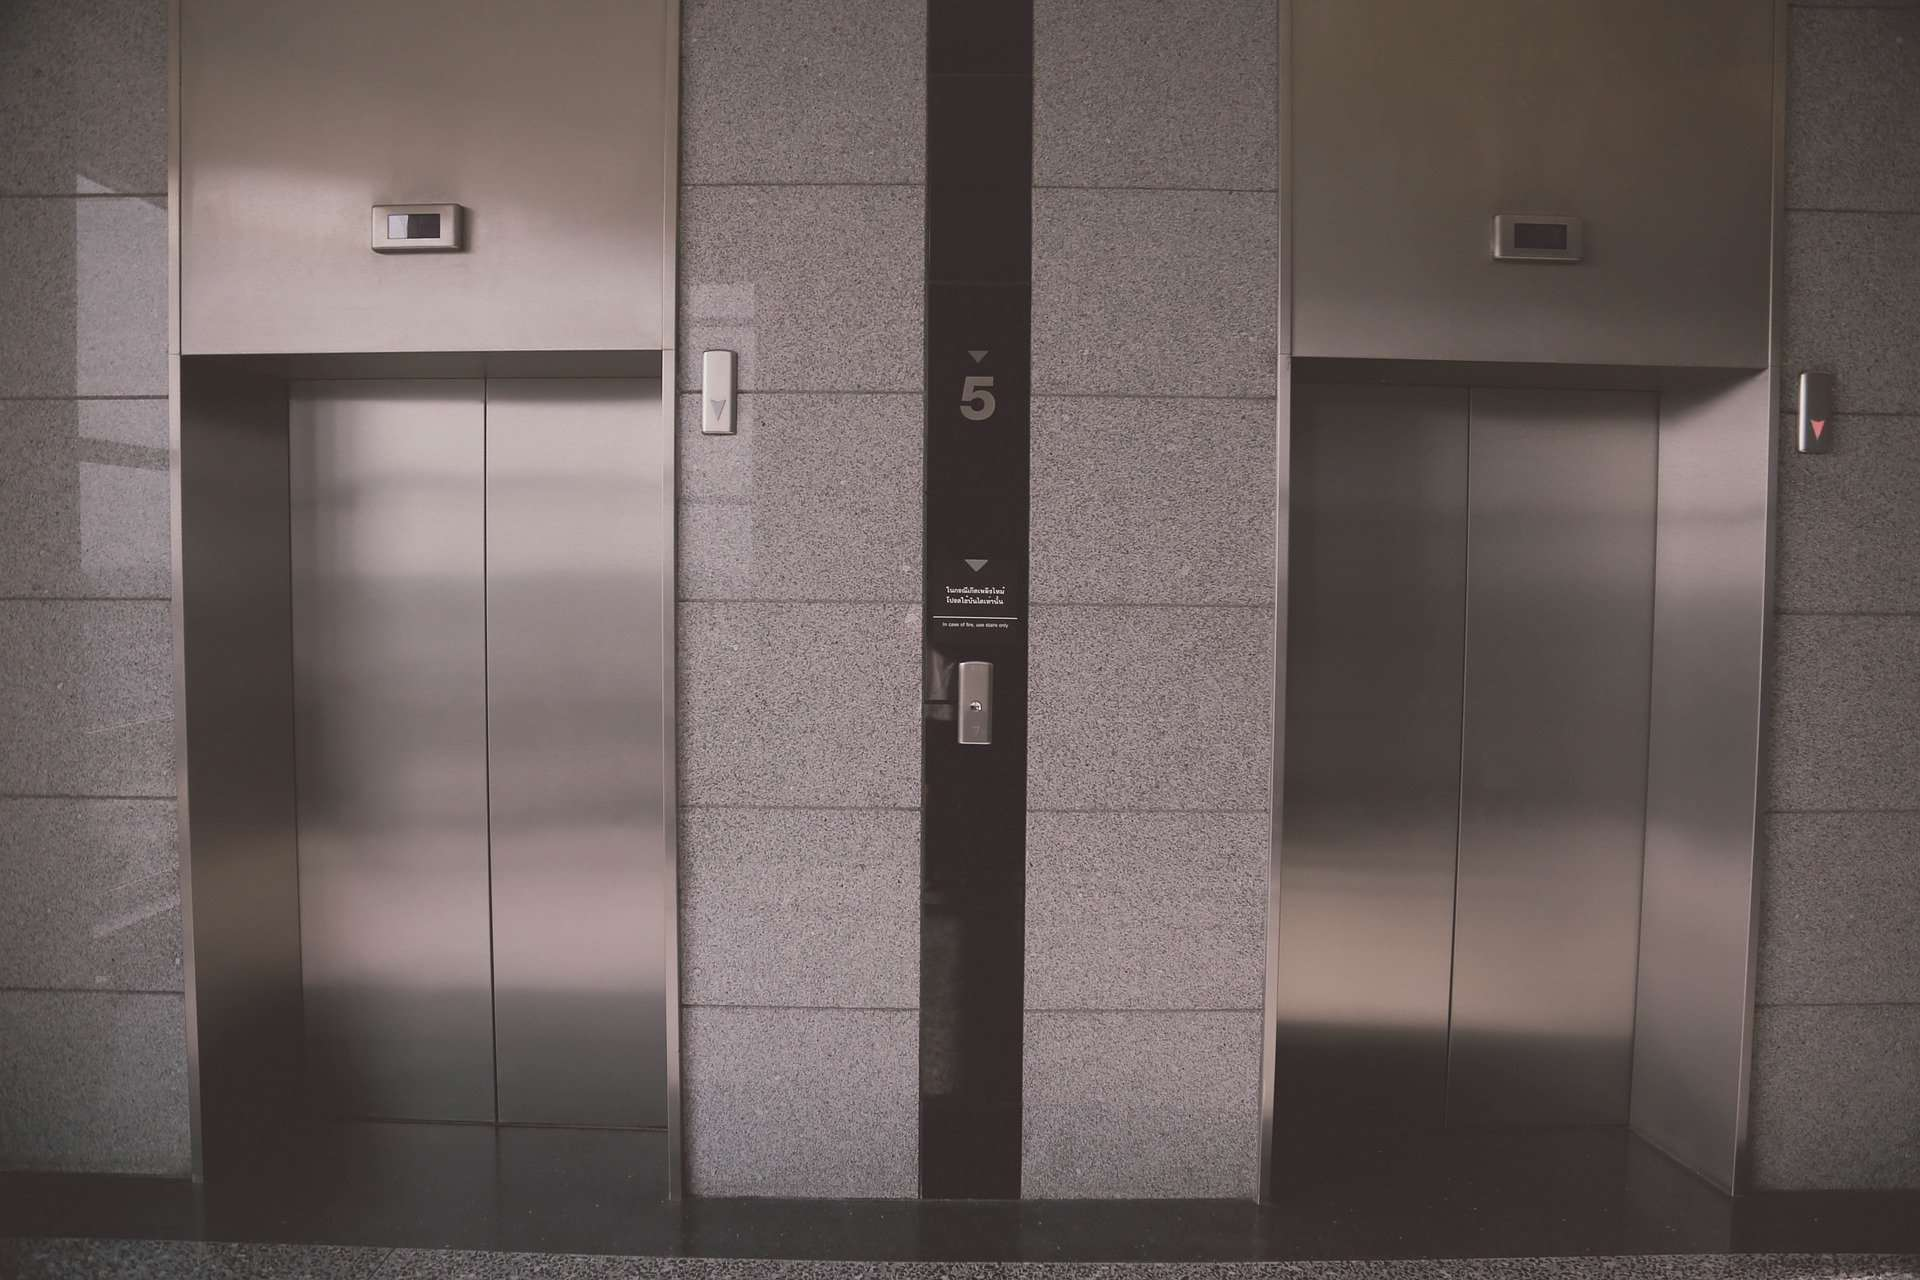 4 Reasons Why You Need Elevator Access Control